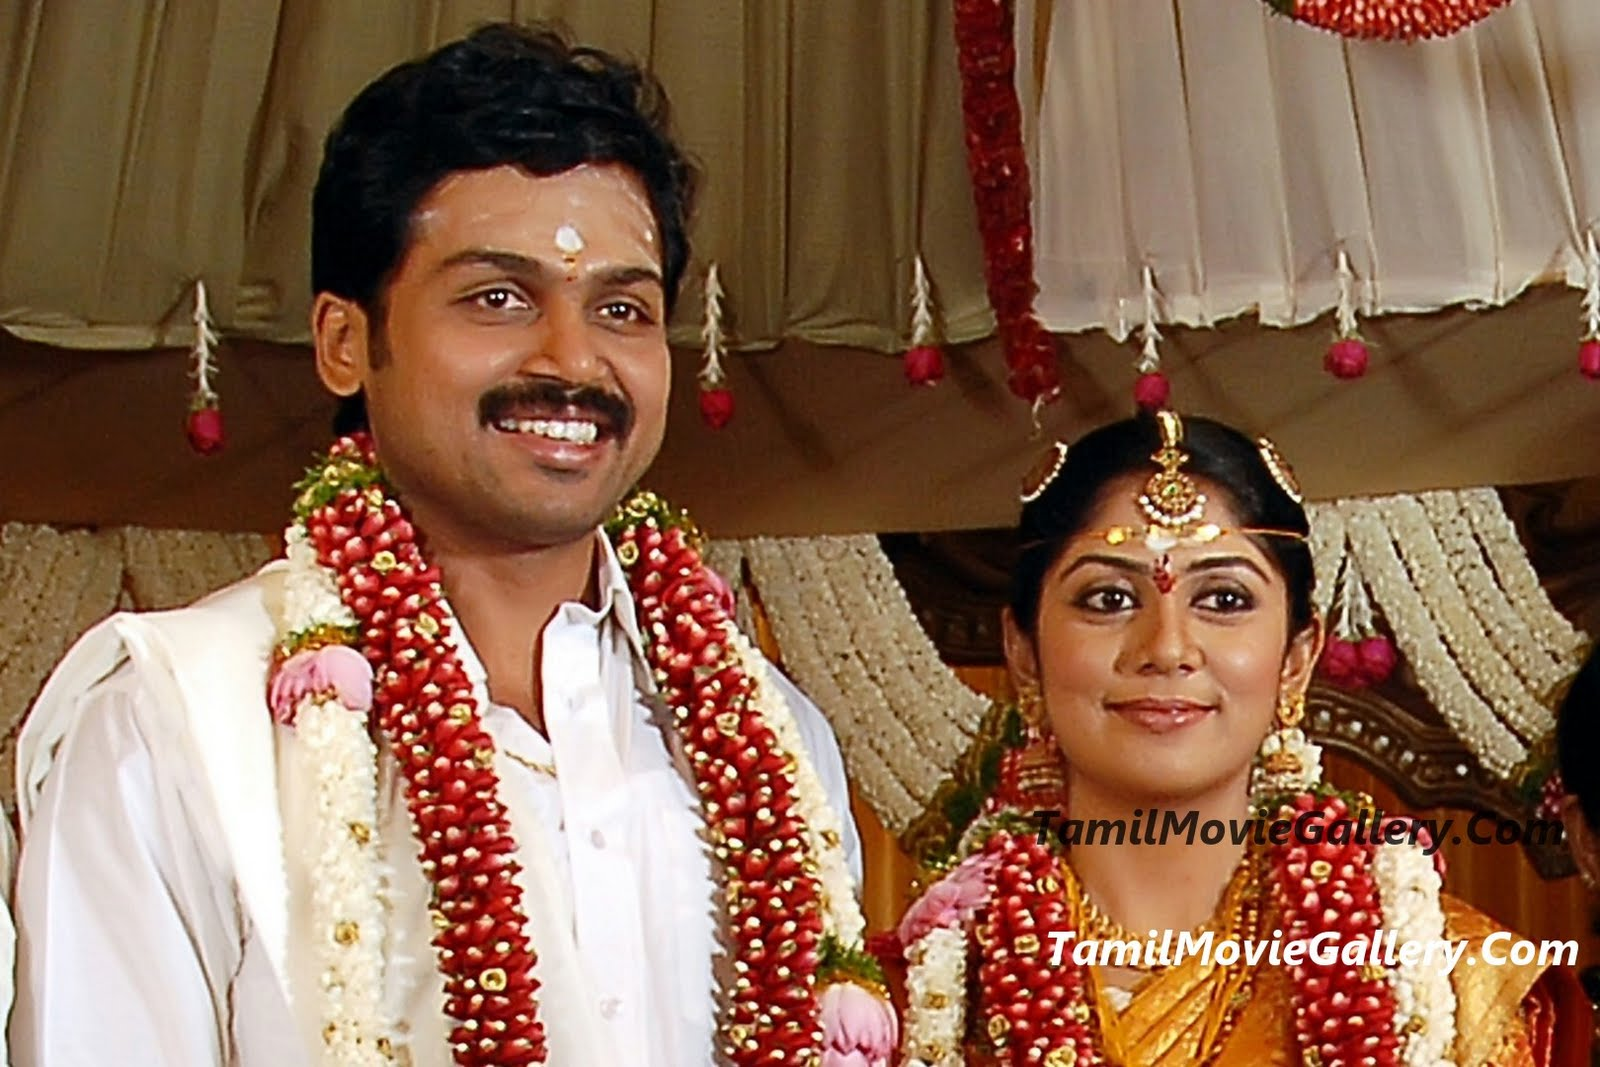 Tamil actor actress marriage videos clips